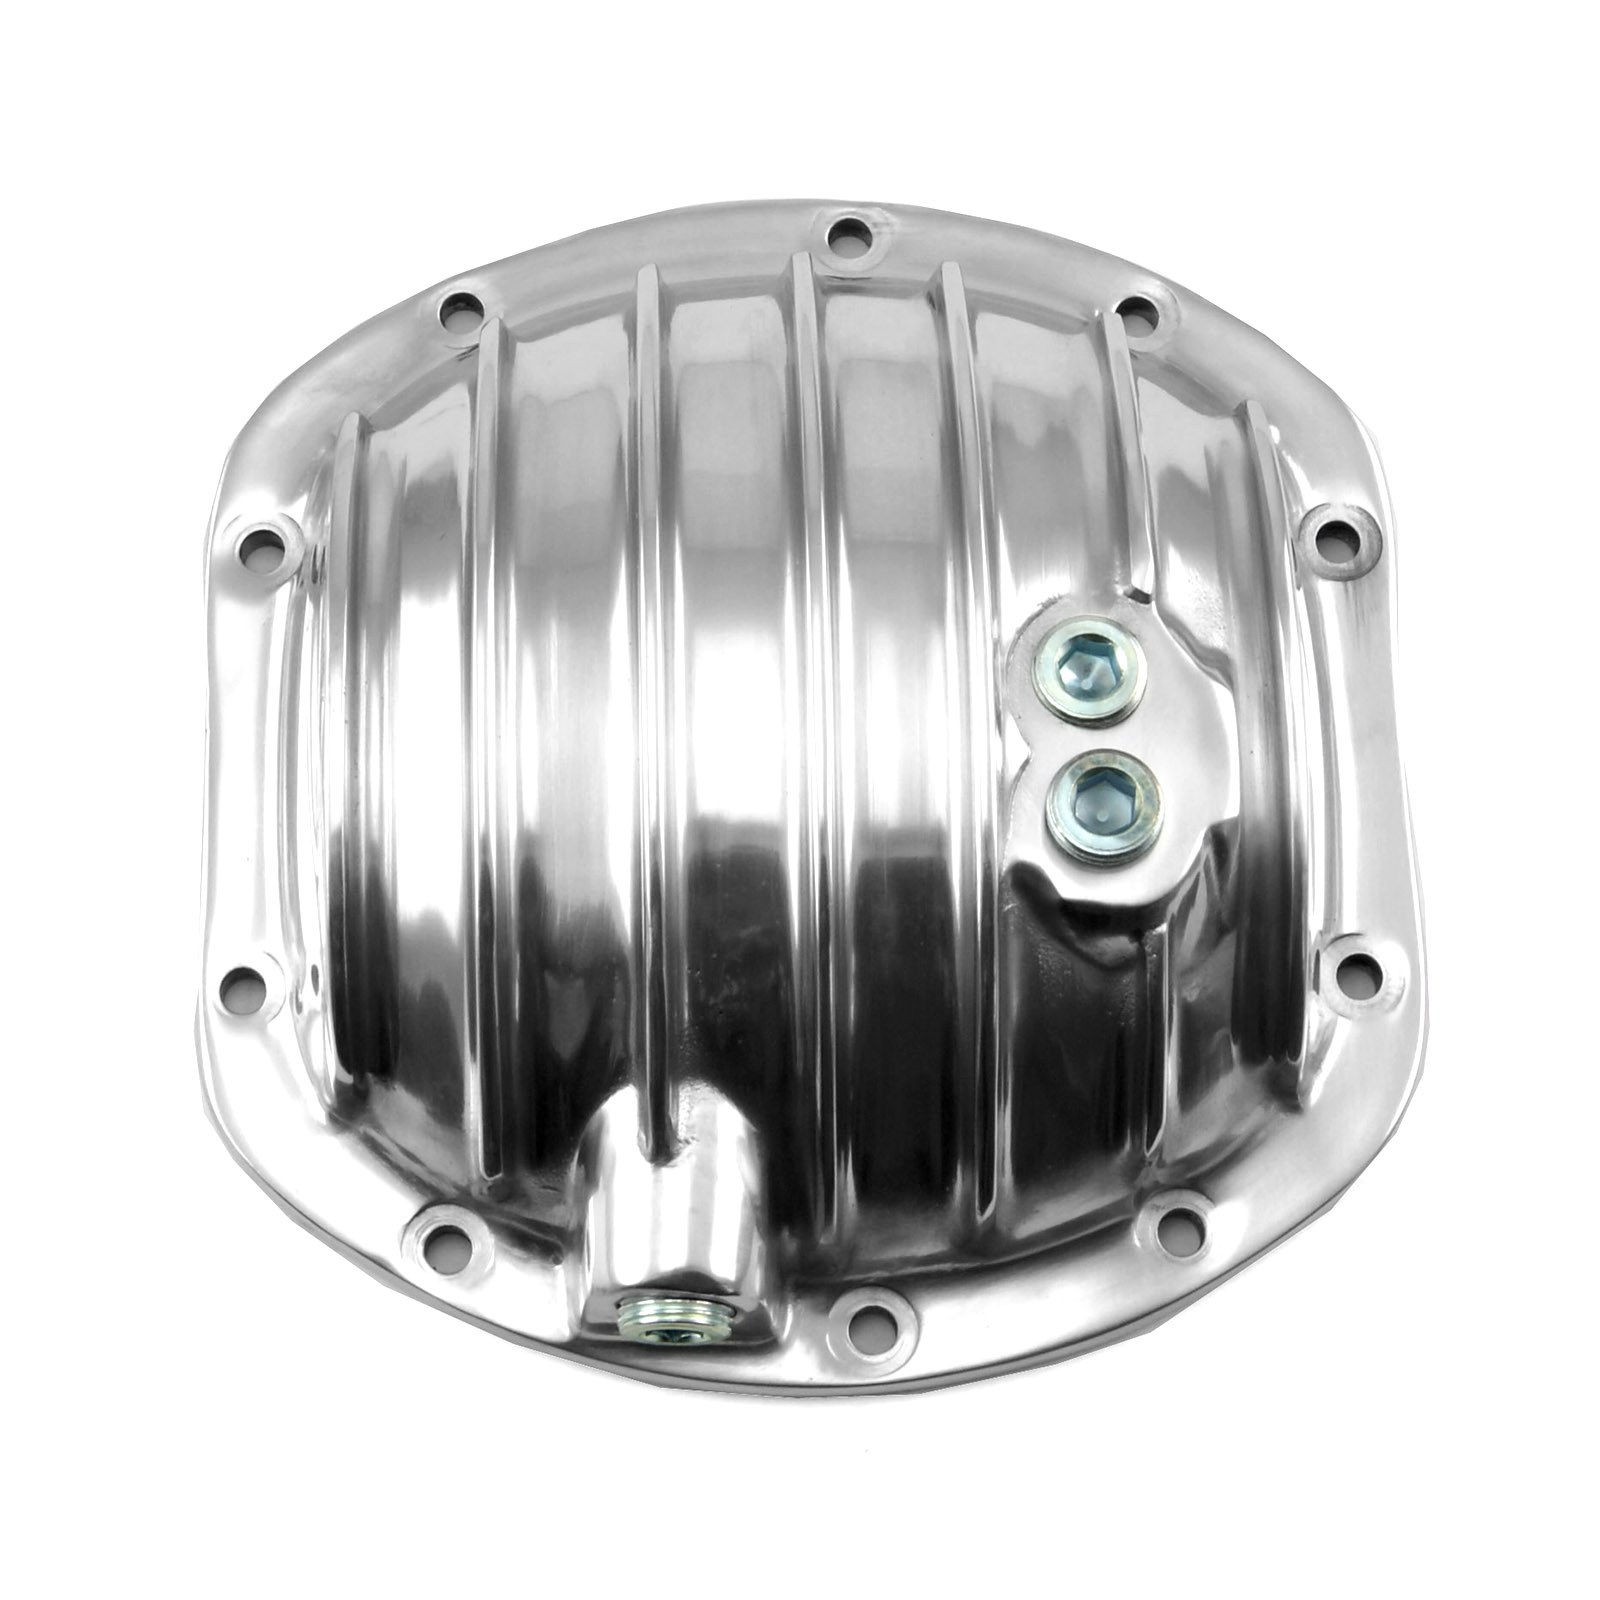 Dana 25 27 30 10 Bolt Polished Aluminum Rear End Differential Rear Cover